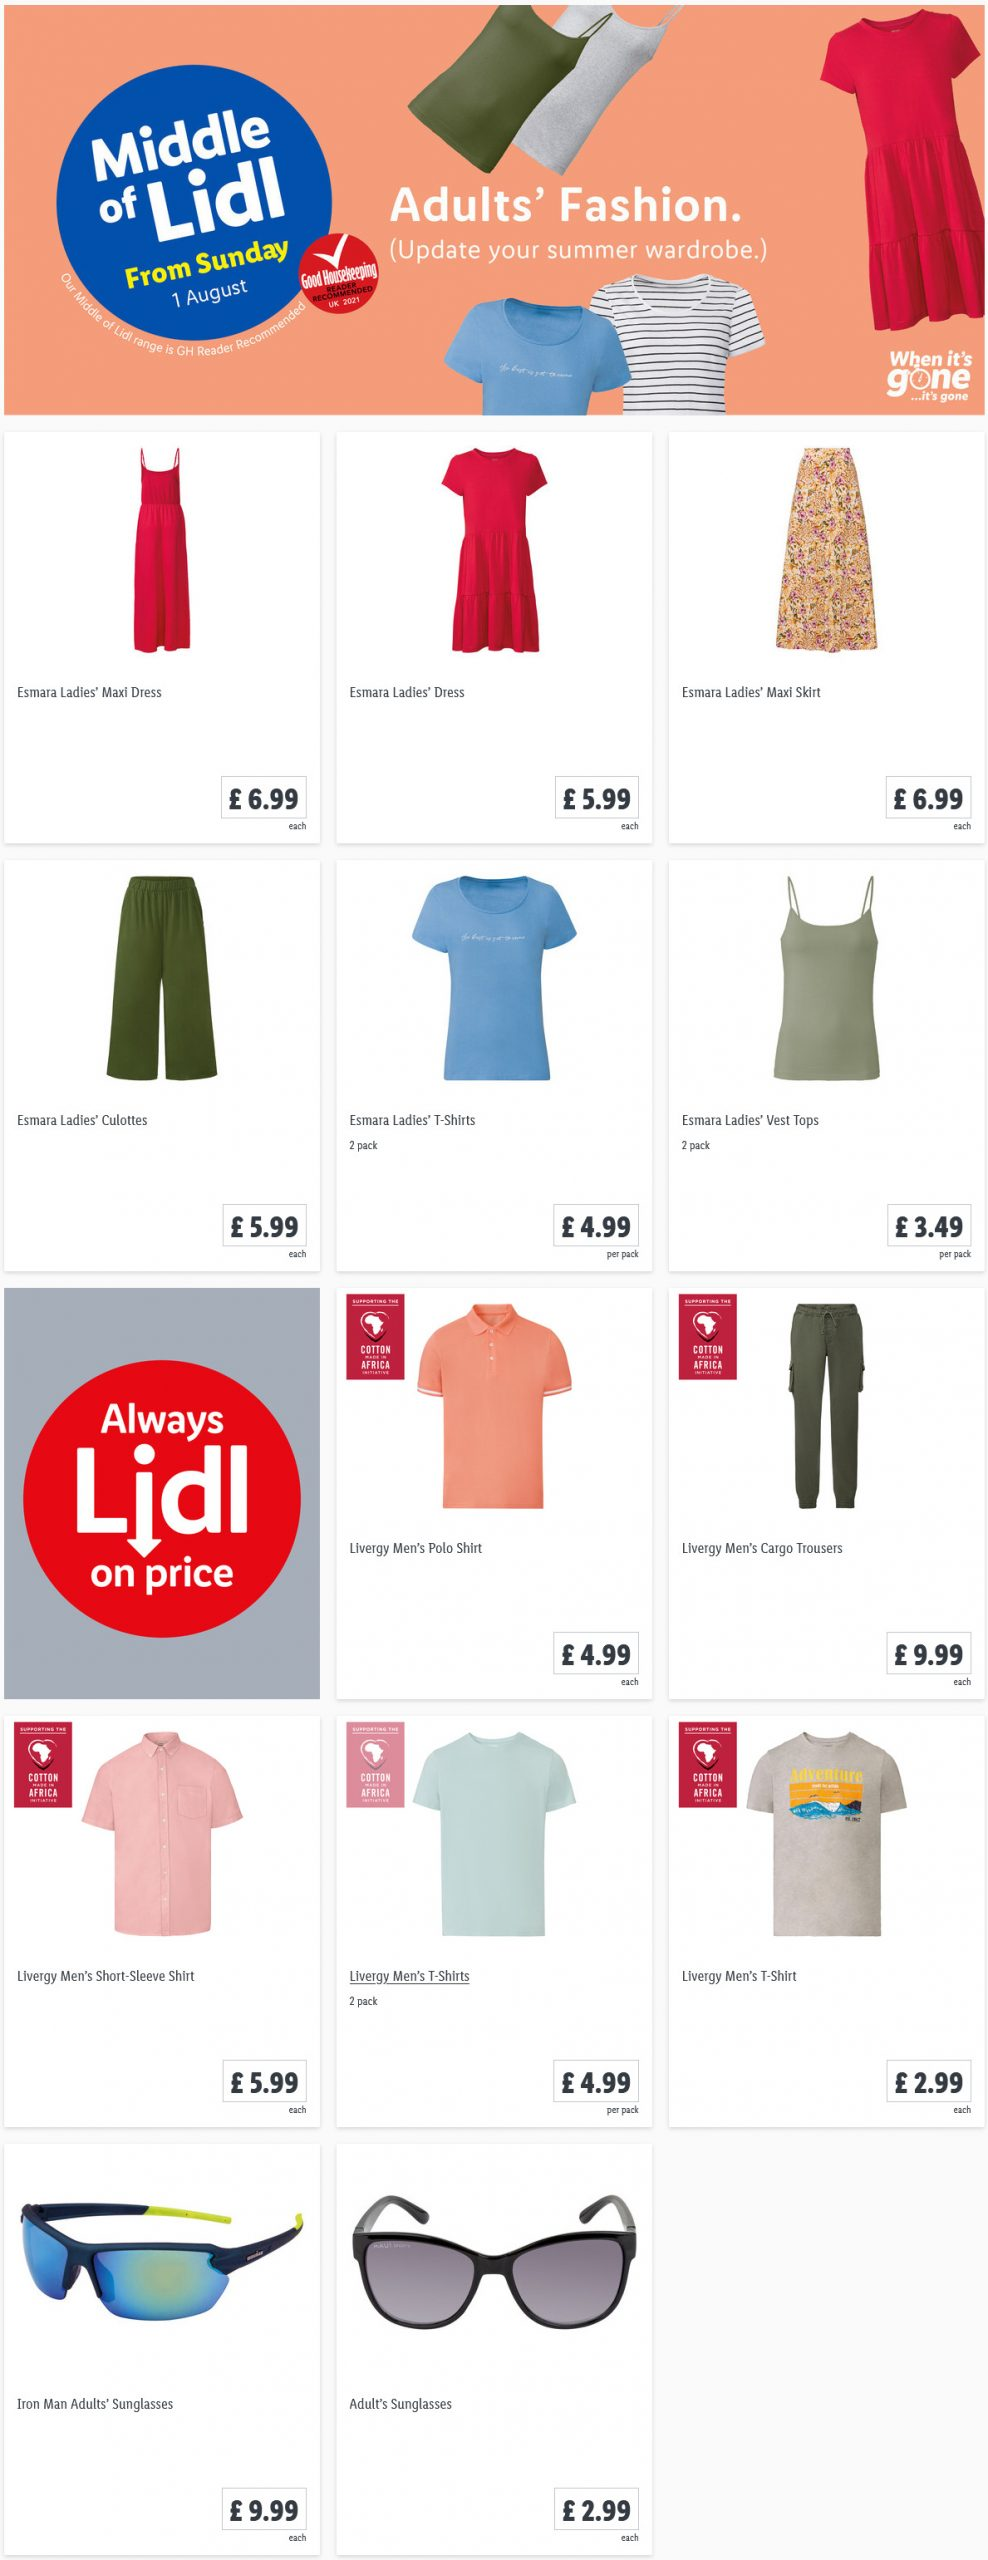 LIDL Sunday Offers Summer Fashion from 1st August 2021